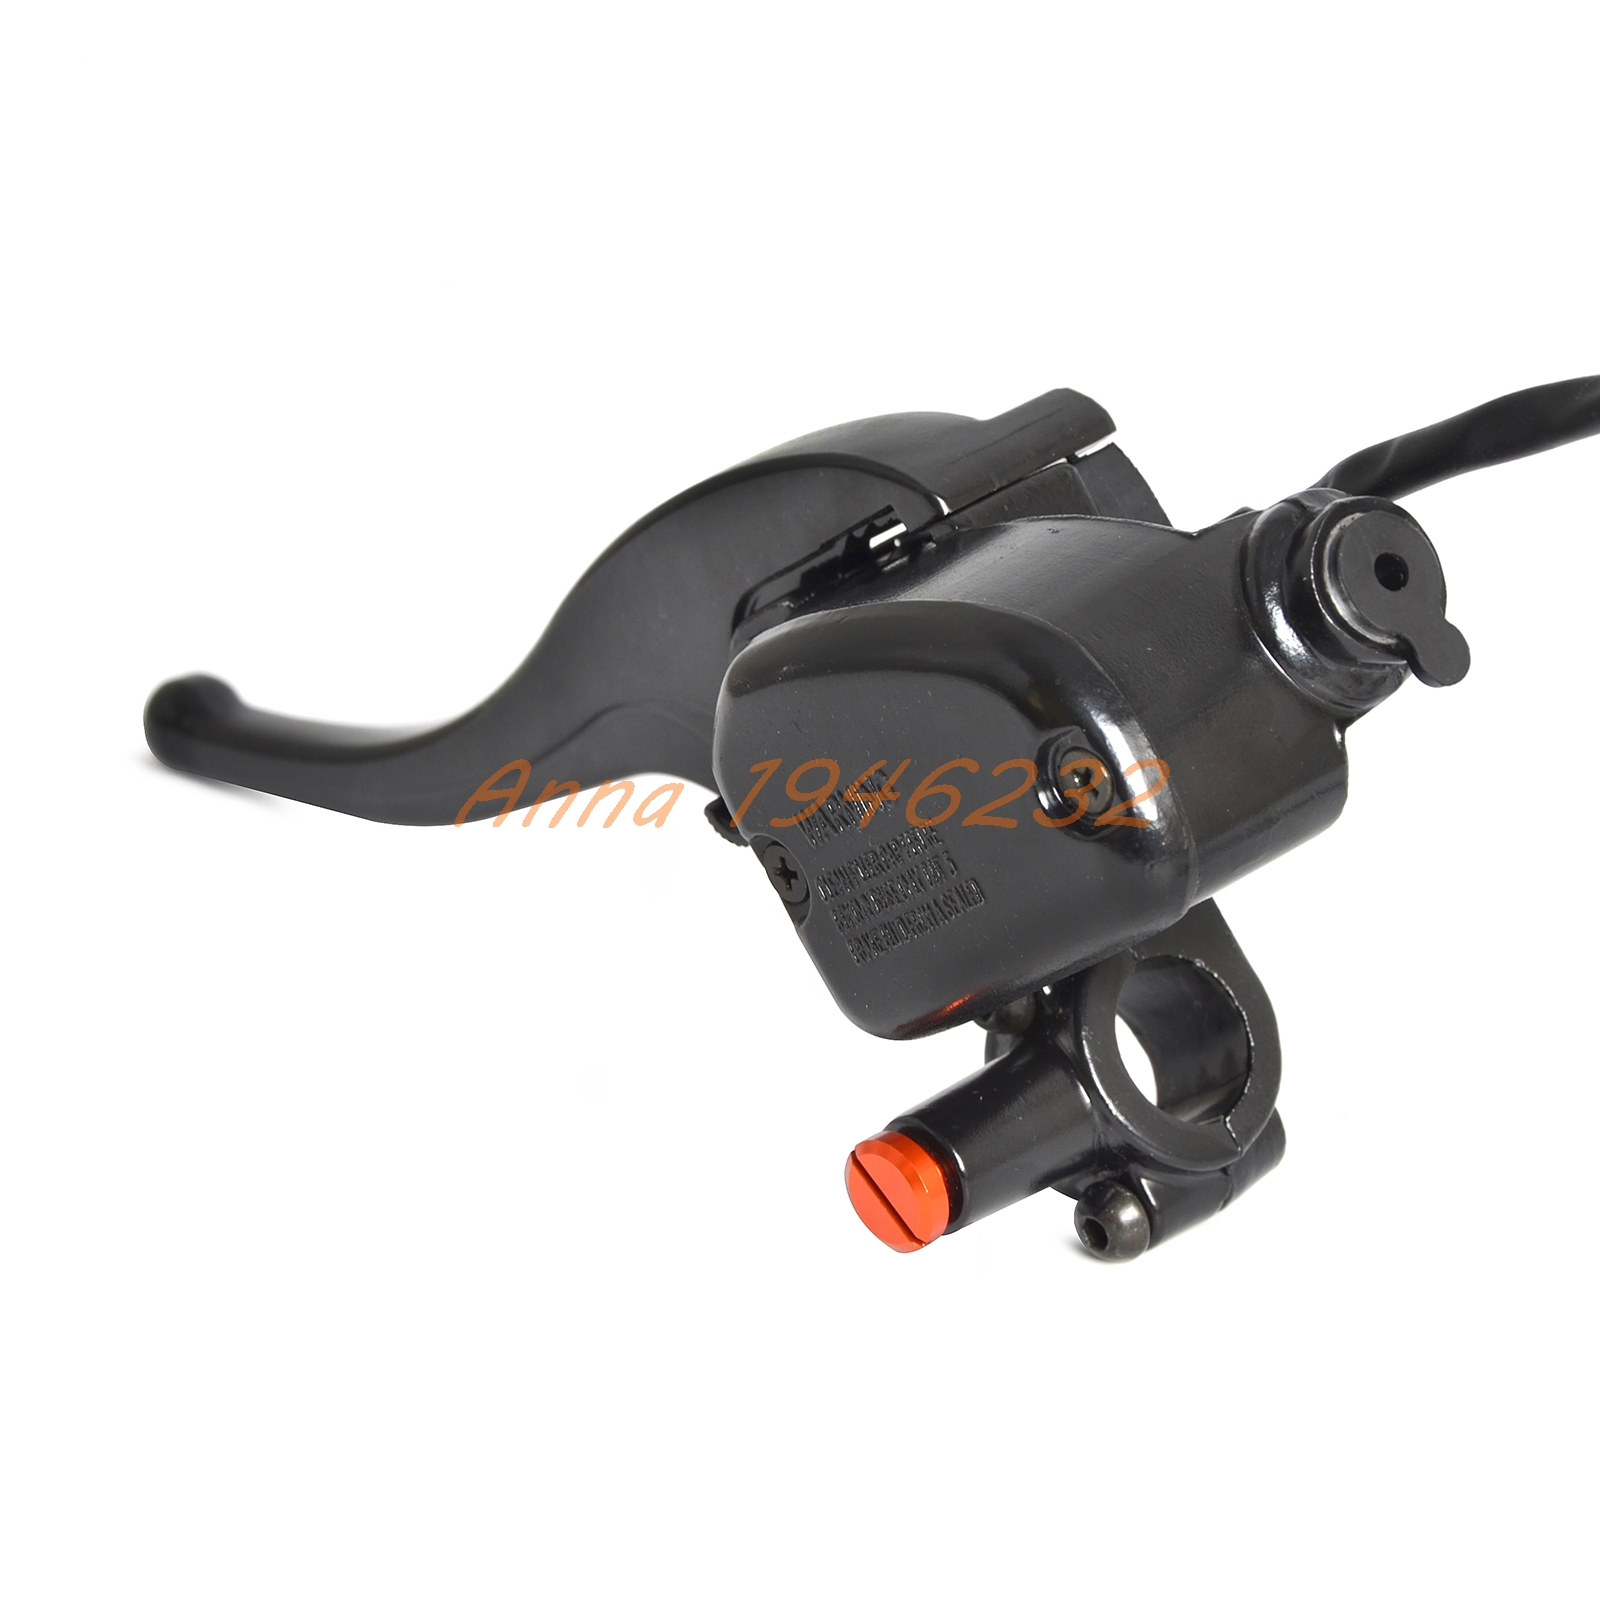 Left Hydraulic Brake Master Cylinder Lever Assembly For Palaris ATV UTV SCRAMBLER 500 TRAIL BLAZER 330 BOSS FOREST 800 лоферы ecco ecco mp002xm0wpfq